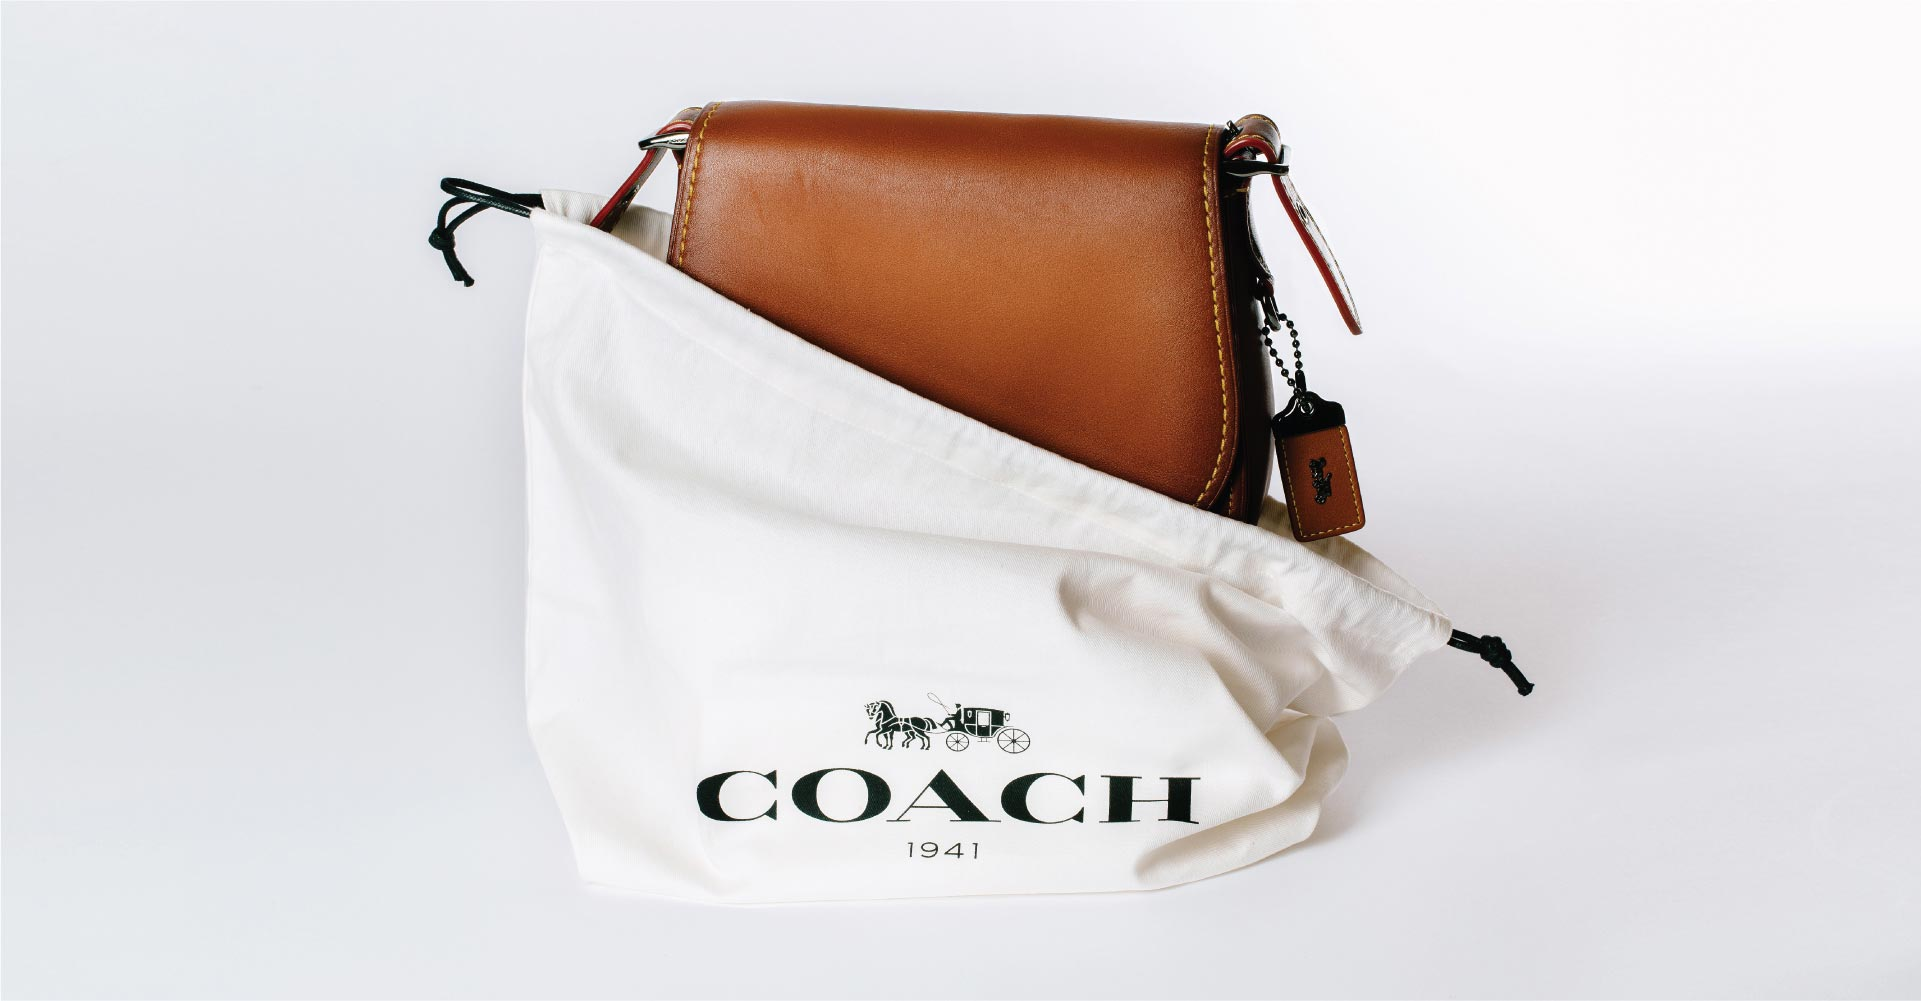 Creative_Retail_Packaging_Package_Design_Luxury_Coach_04.jpg